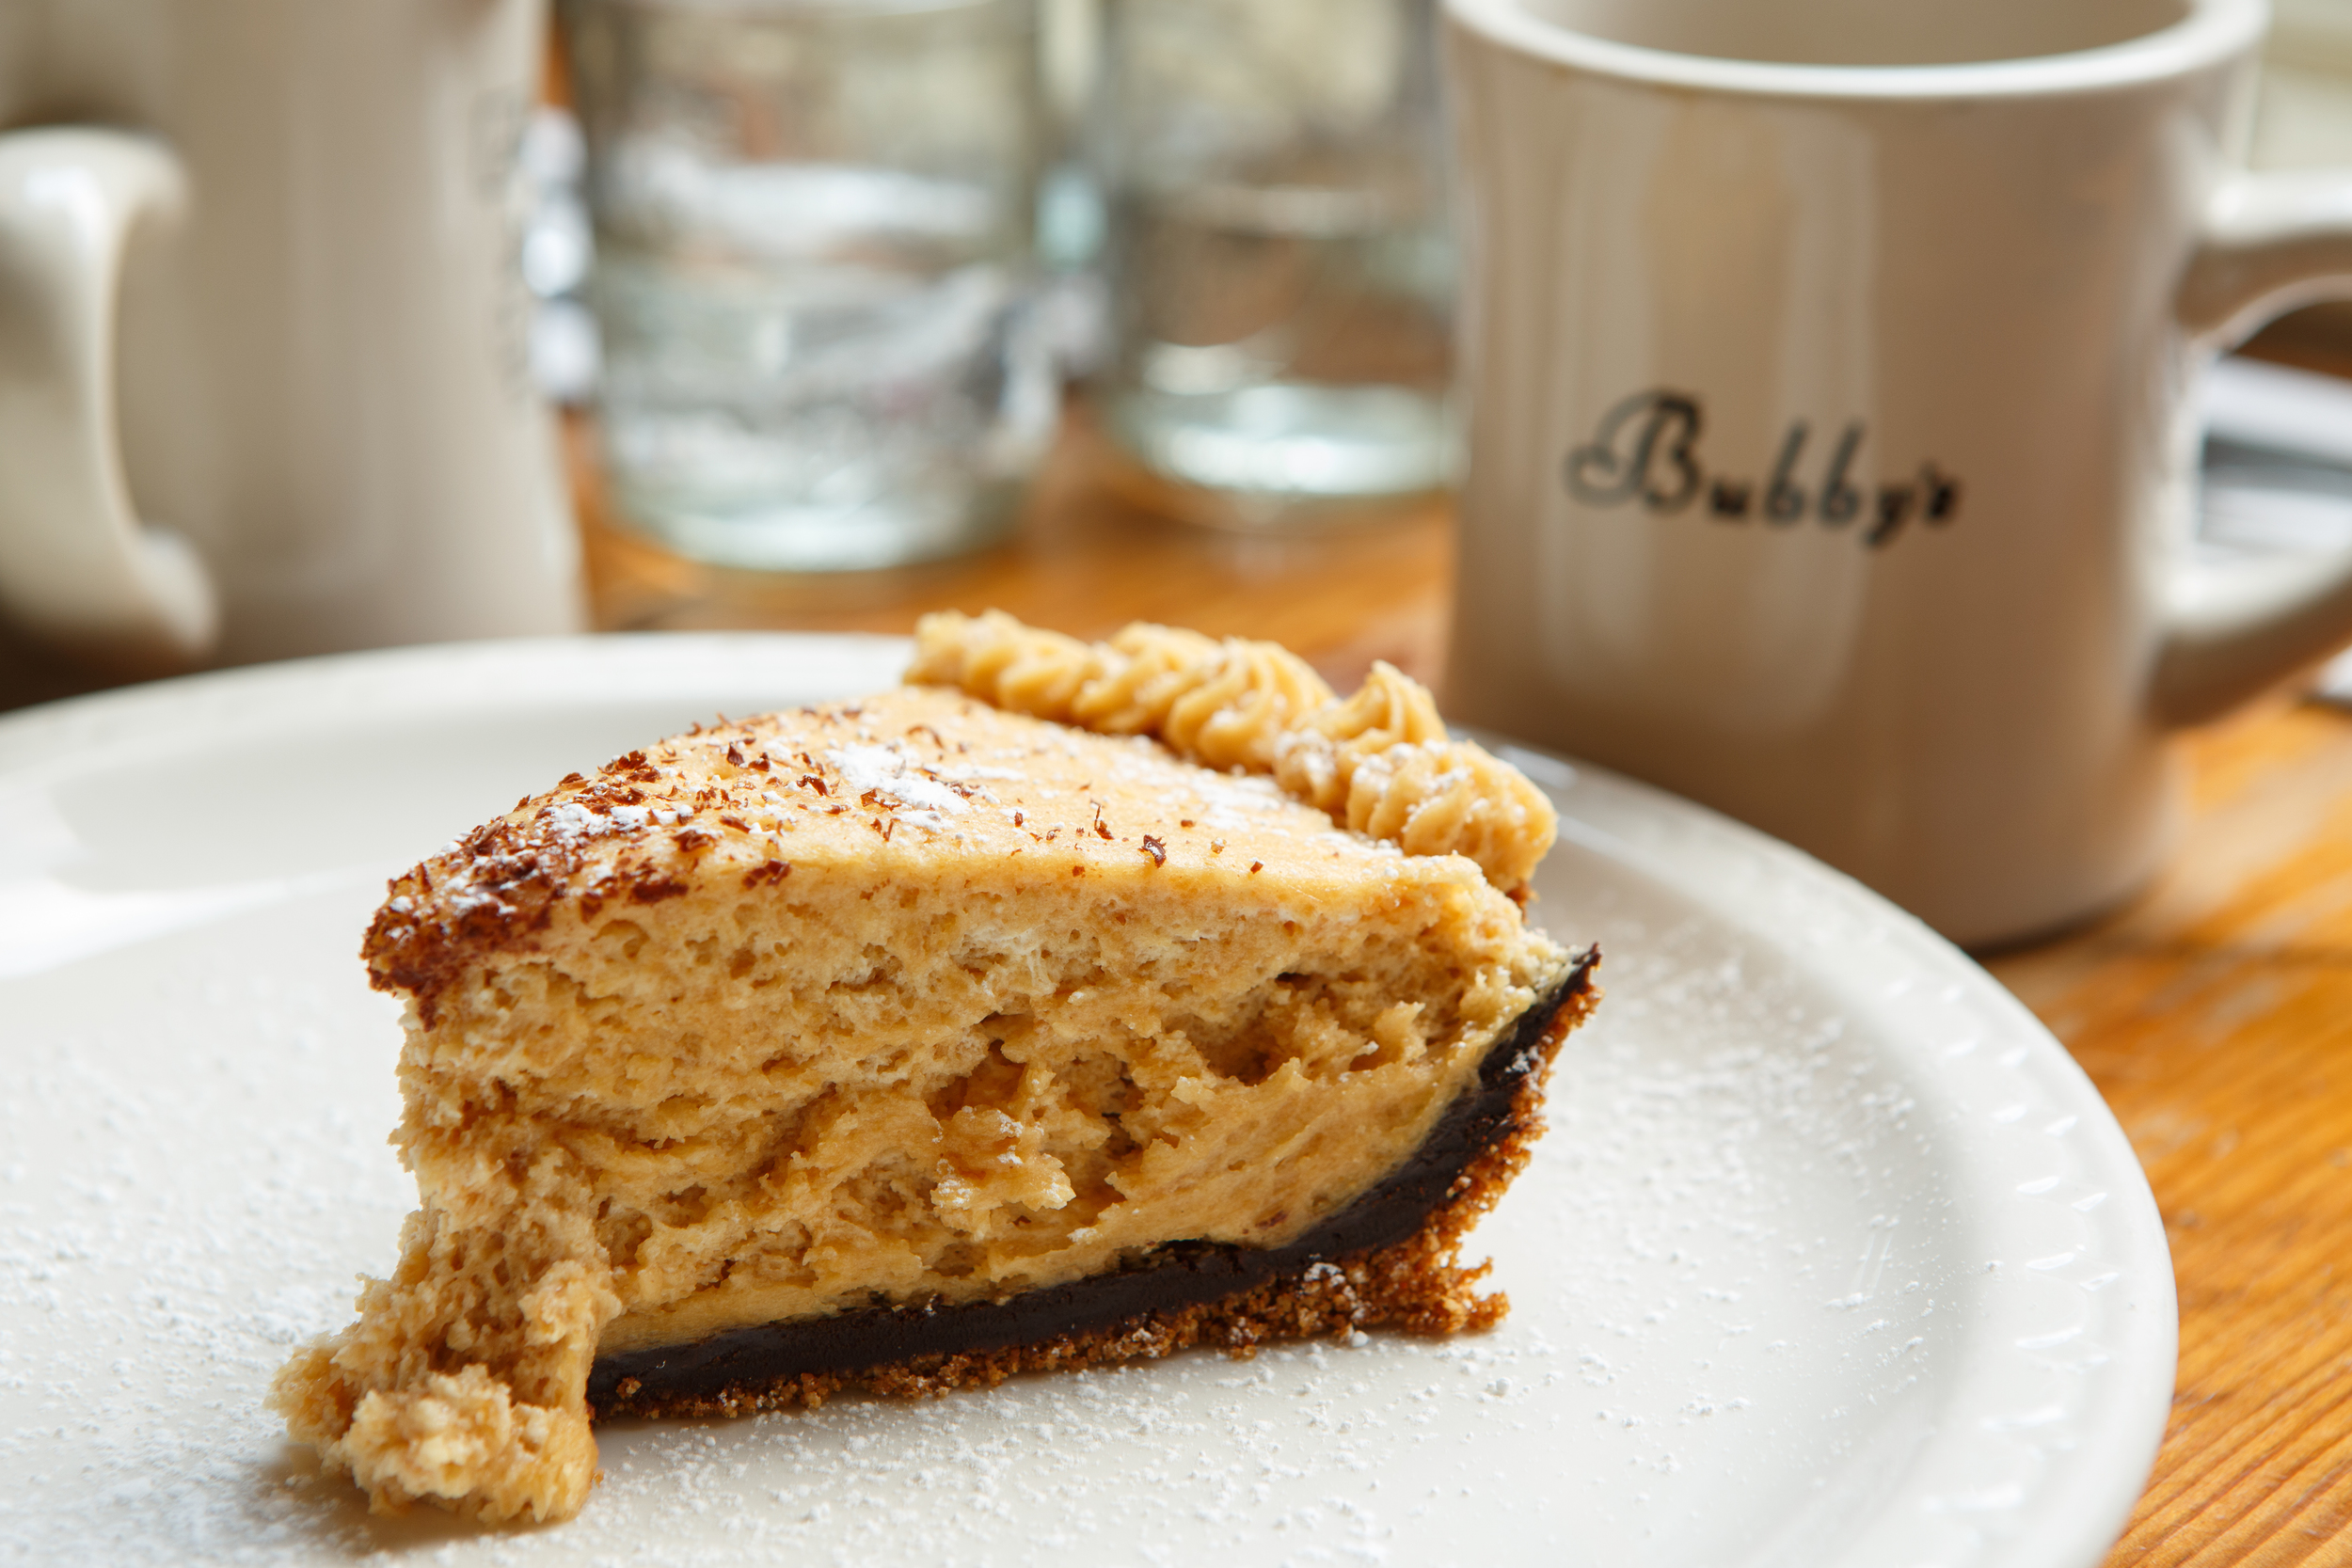 Organic Peanut Butter Chocolate Pie from Bubby's